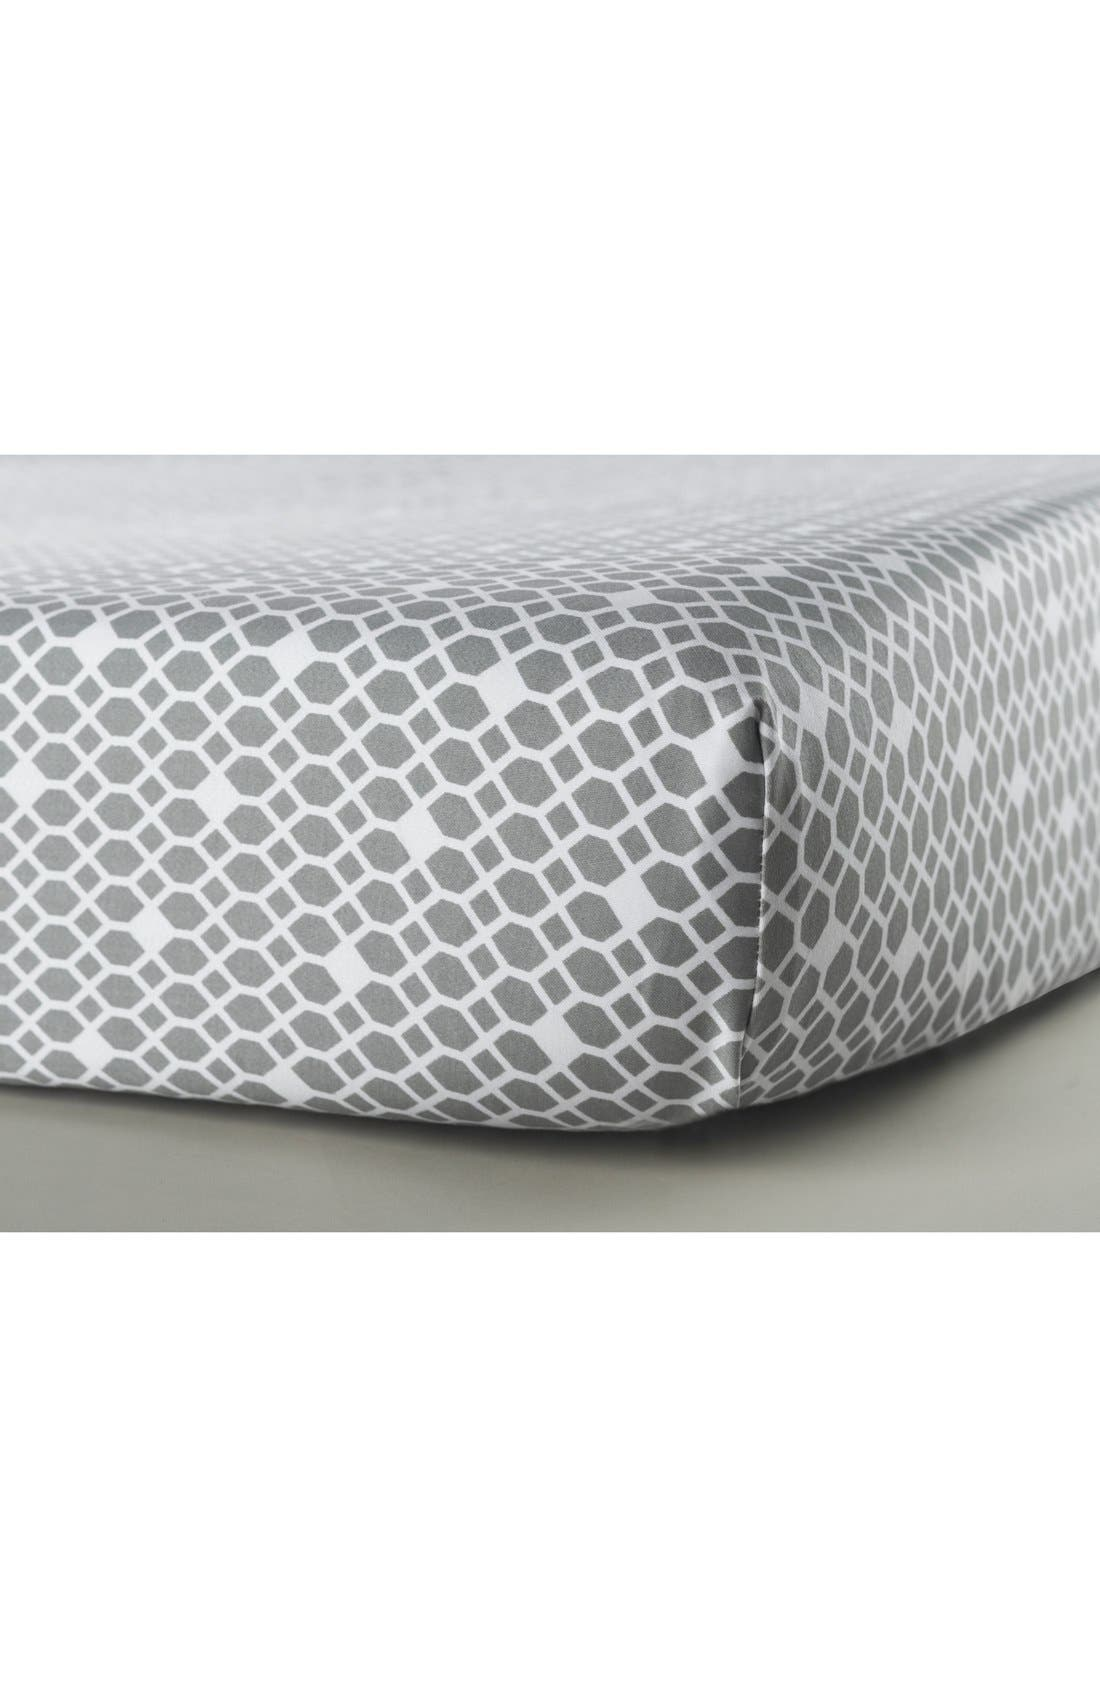 Main Image - Oilo Cotton Sateen Fitted Crib Sheet